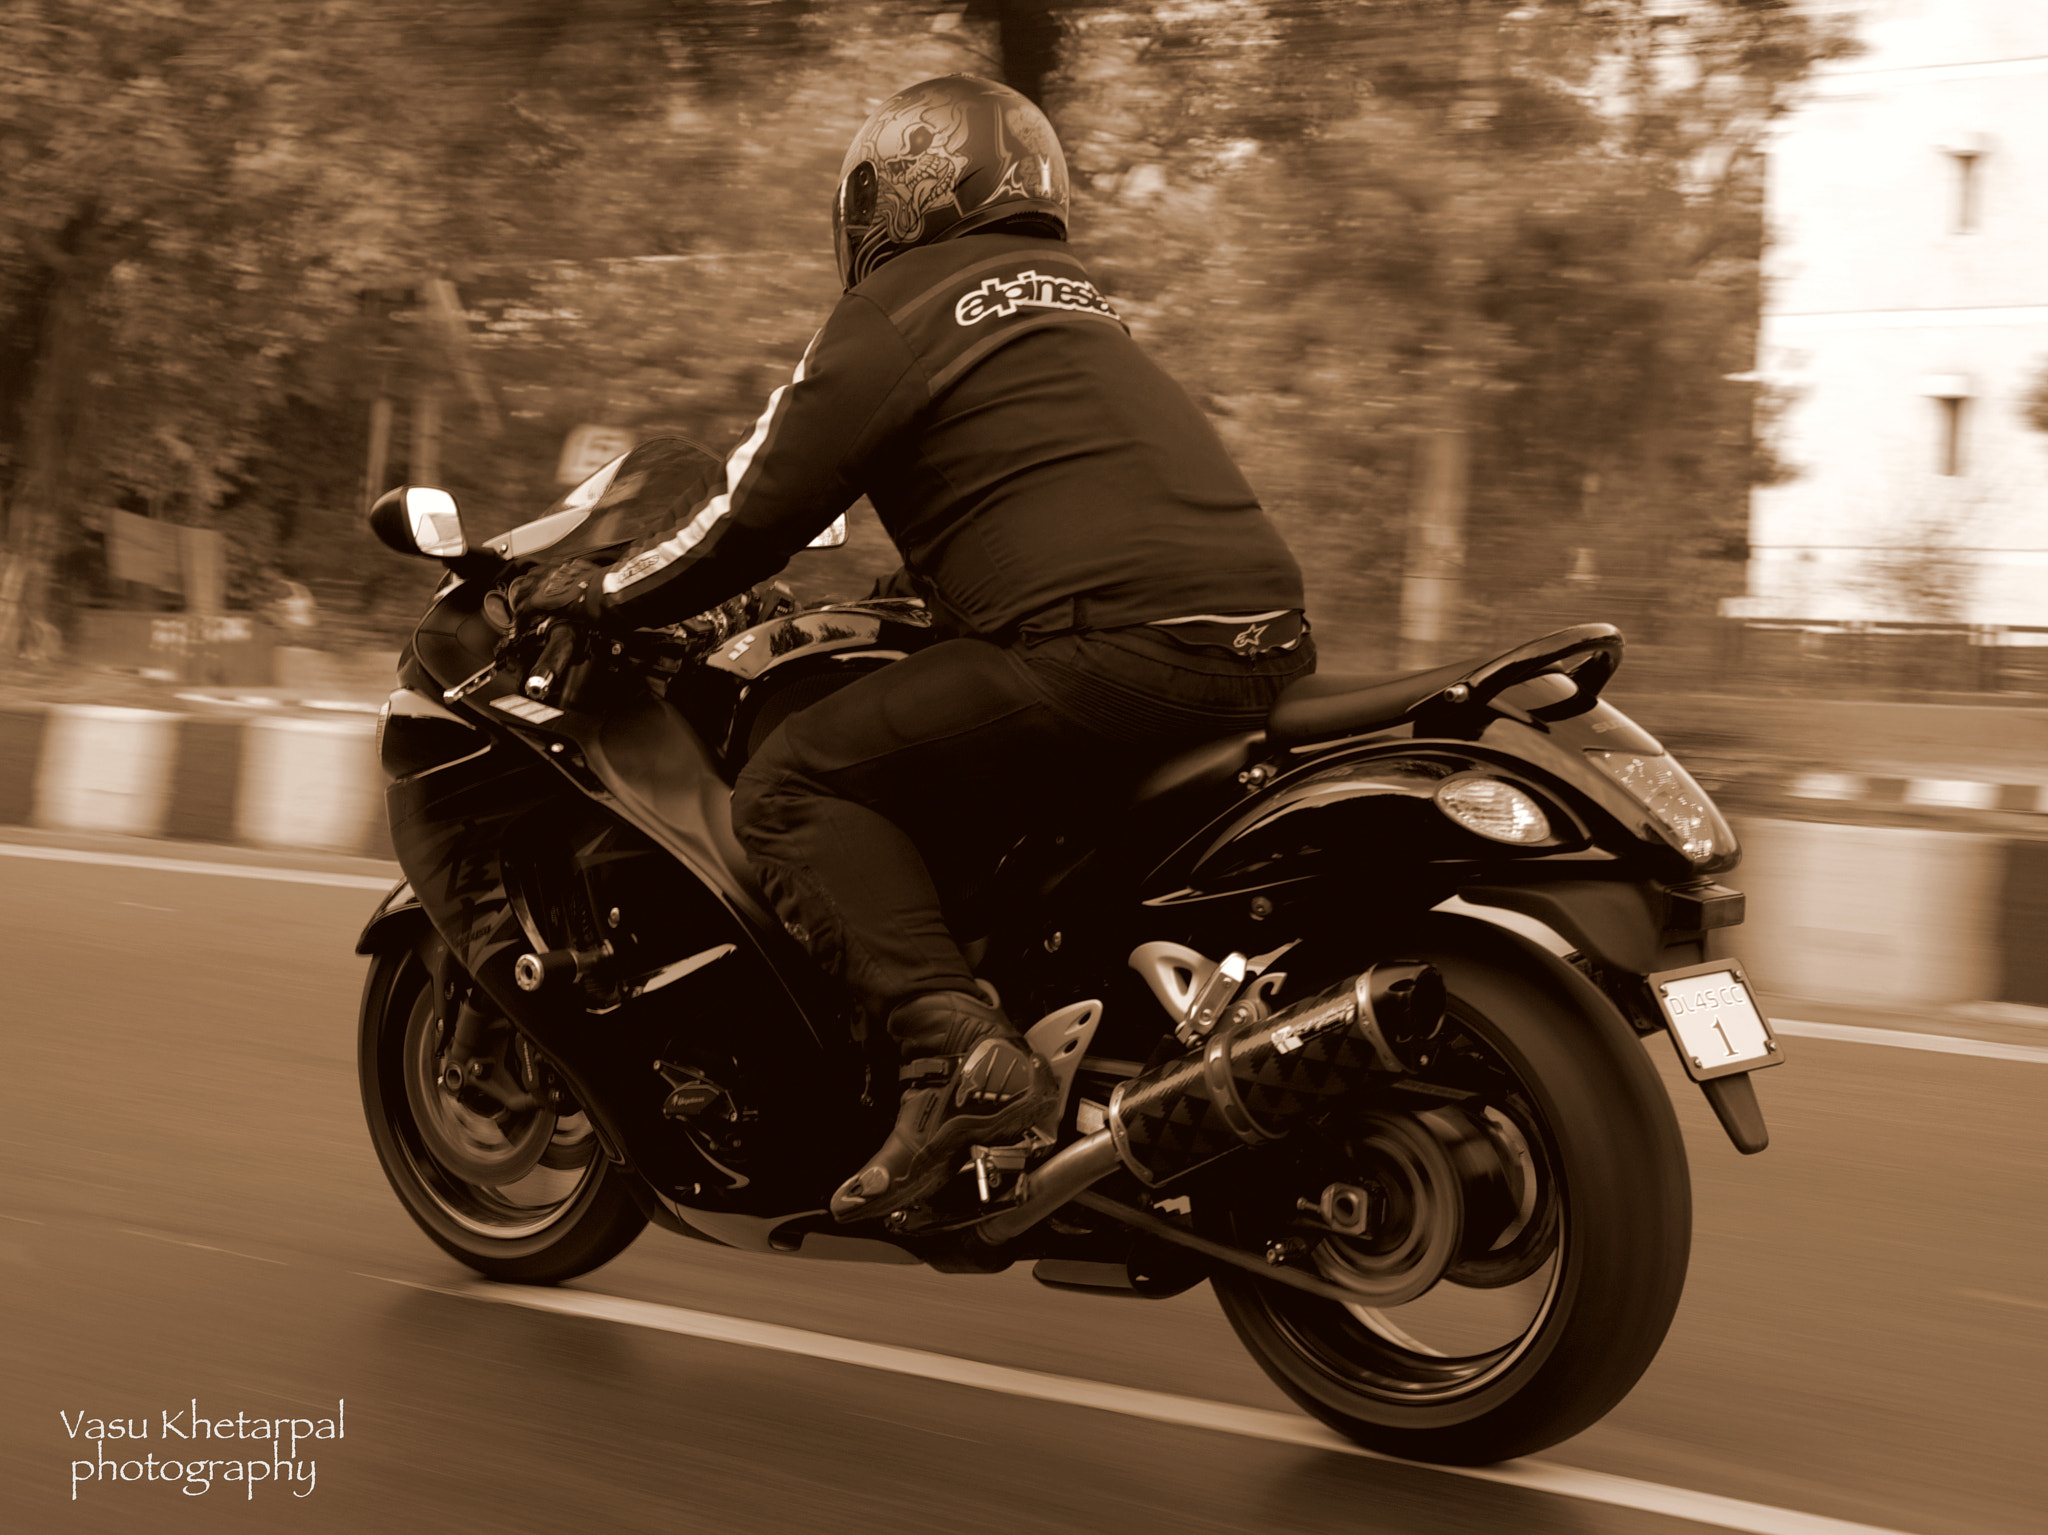 Photograph feel the speed by Vasu Khetarpal on 500px